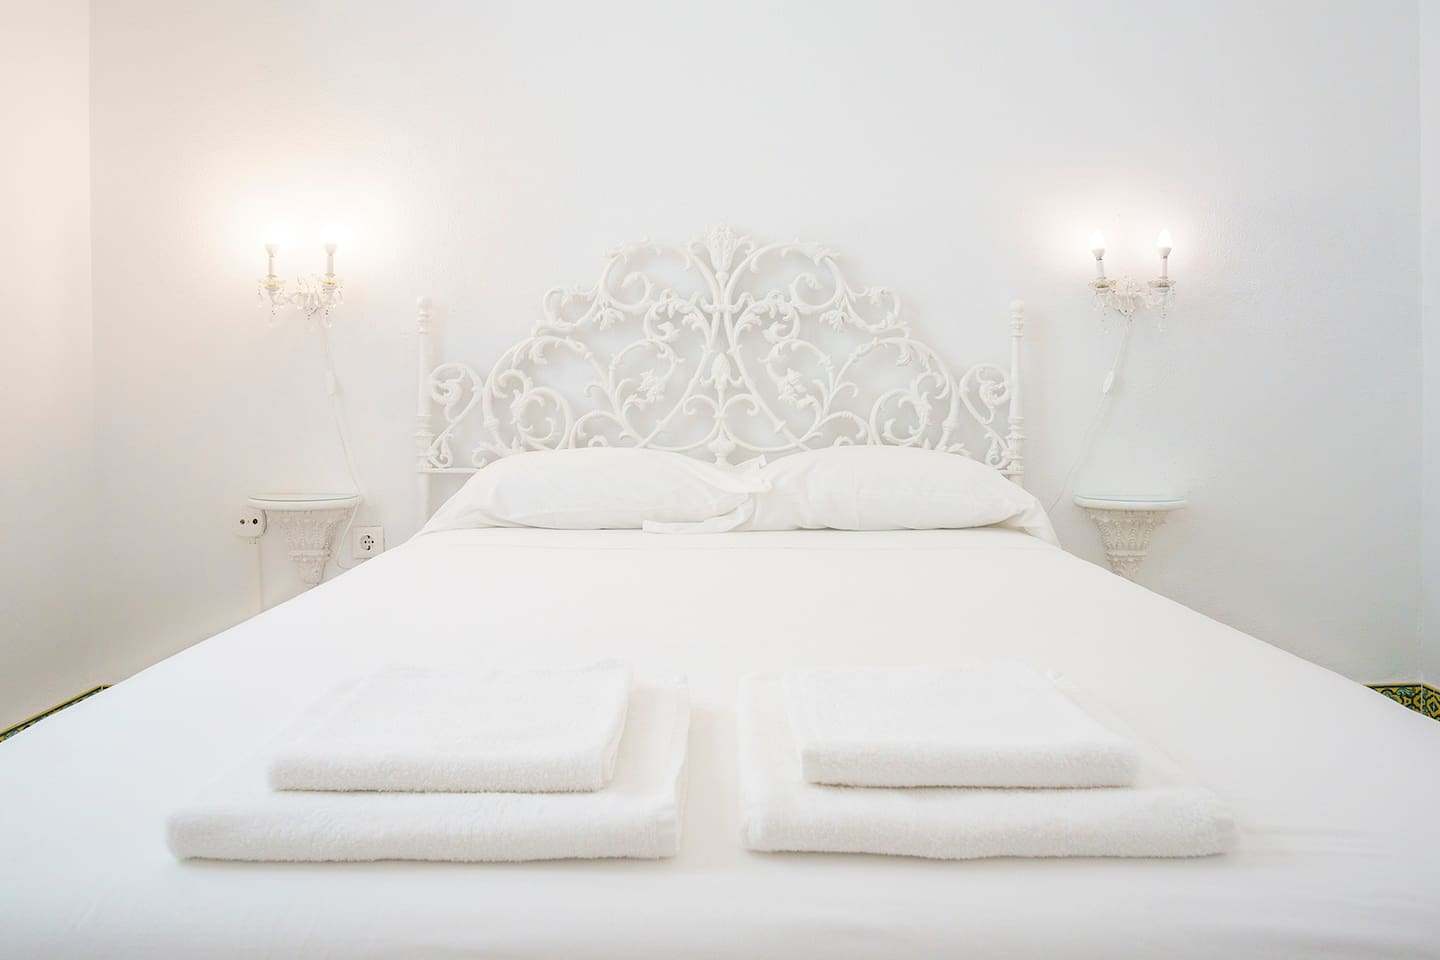 The bedroom has 11m2, a queen size bed, a closet and a coquette with a white marble top. Painted in white and with high ceilings. Triple glazing, stained glass windows and solid wood shutters give access to a balcony overlooking Antonio Lopez Street. Softly illuminated by an old votive lamp suspended from the ceiling and light fixtures on two carved brackets that serve as bedside tables. Towels & linen are provided.